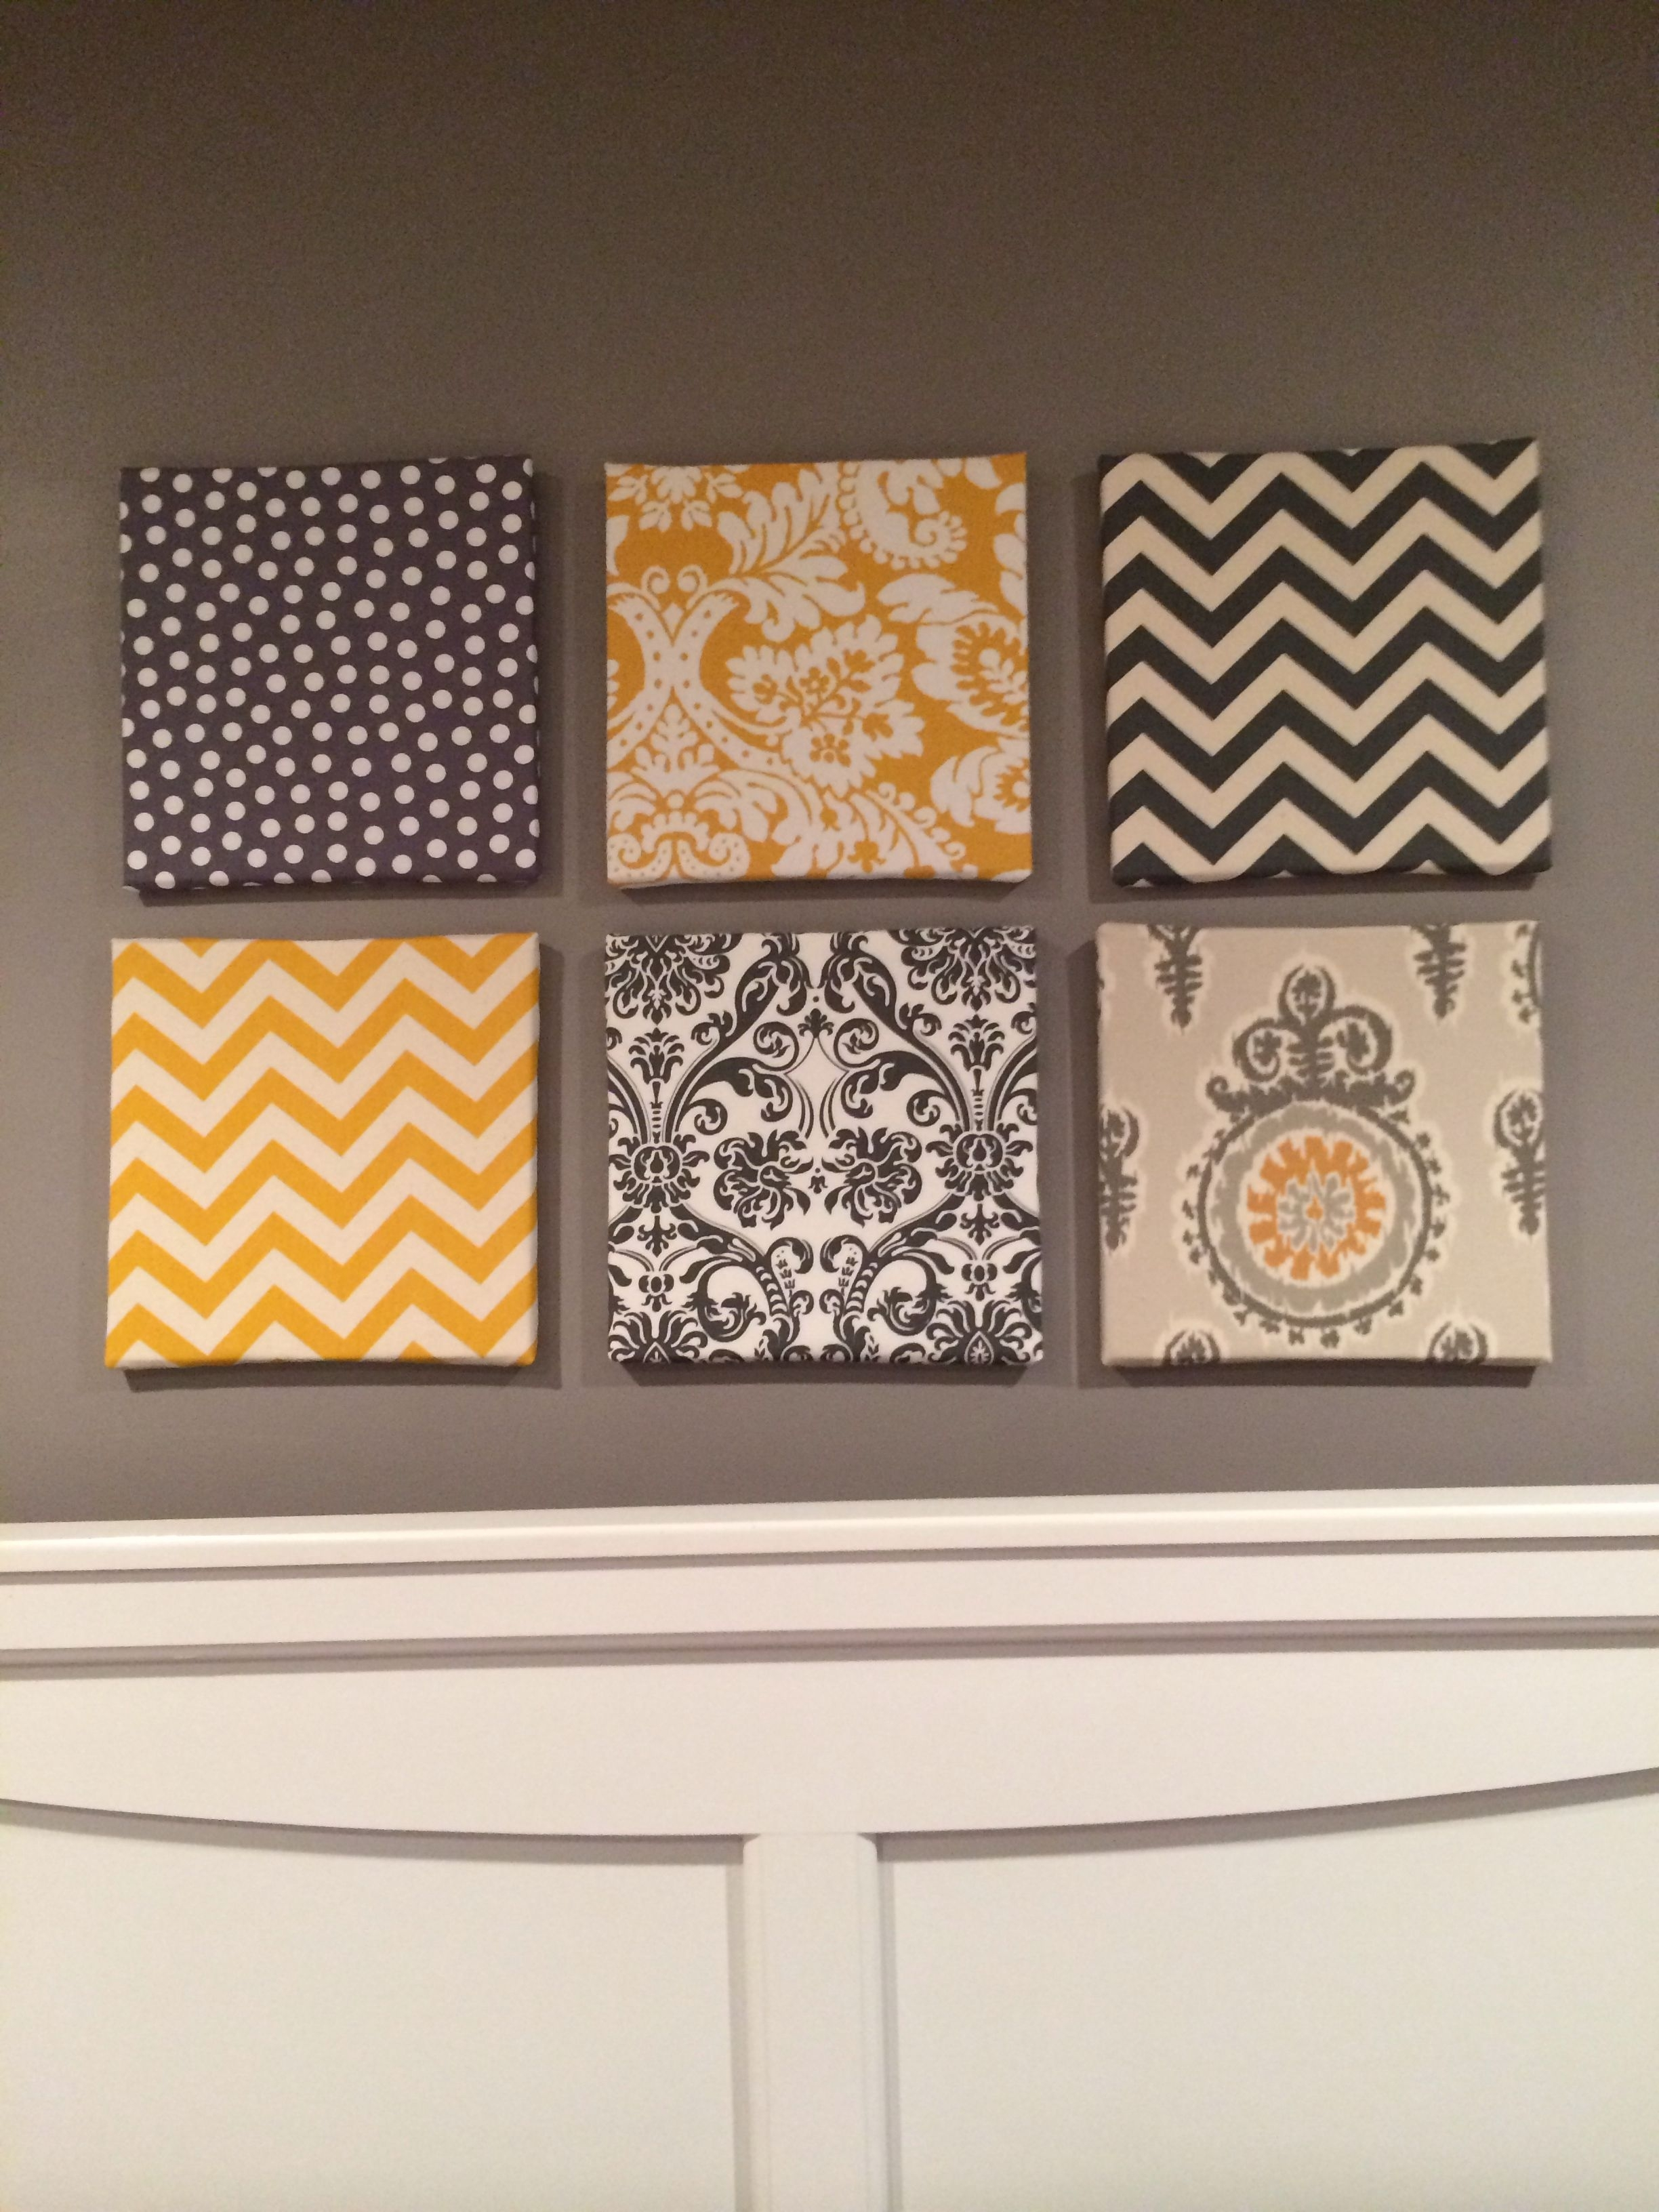 My Fabric Over Canvas Wall Art For My Gray And Yellow Themed Room Throughout Latest High End Fabric Wall Art (Gallery 7 of 15)